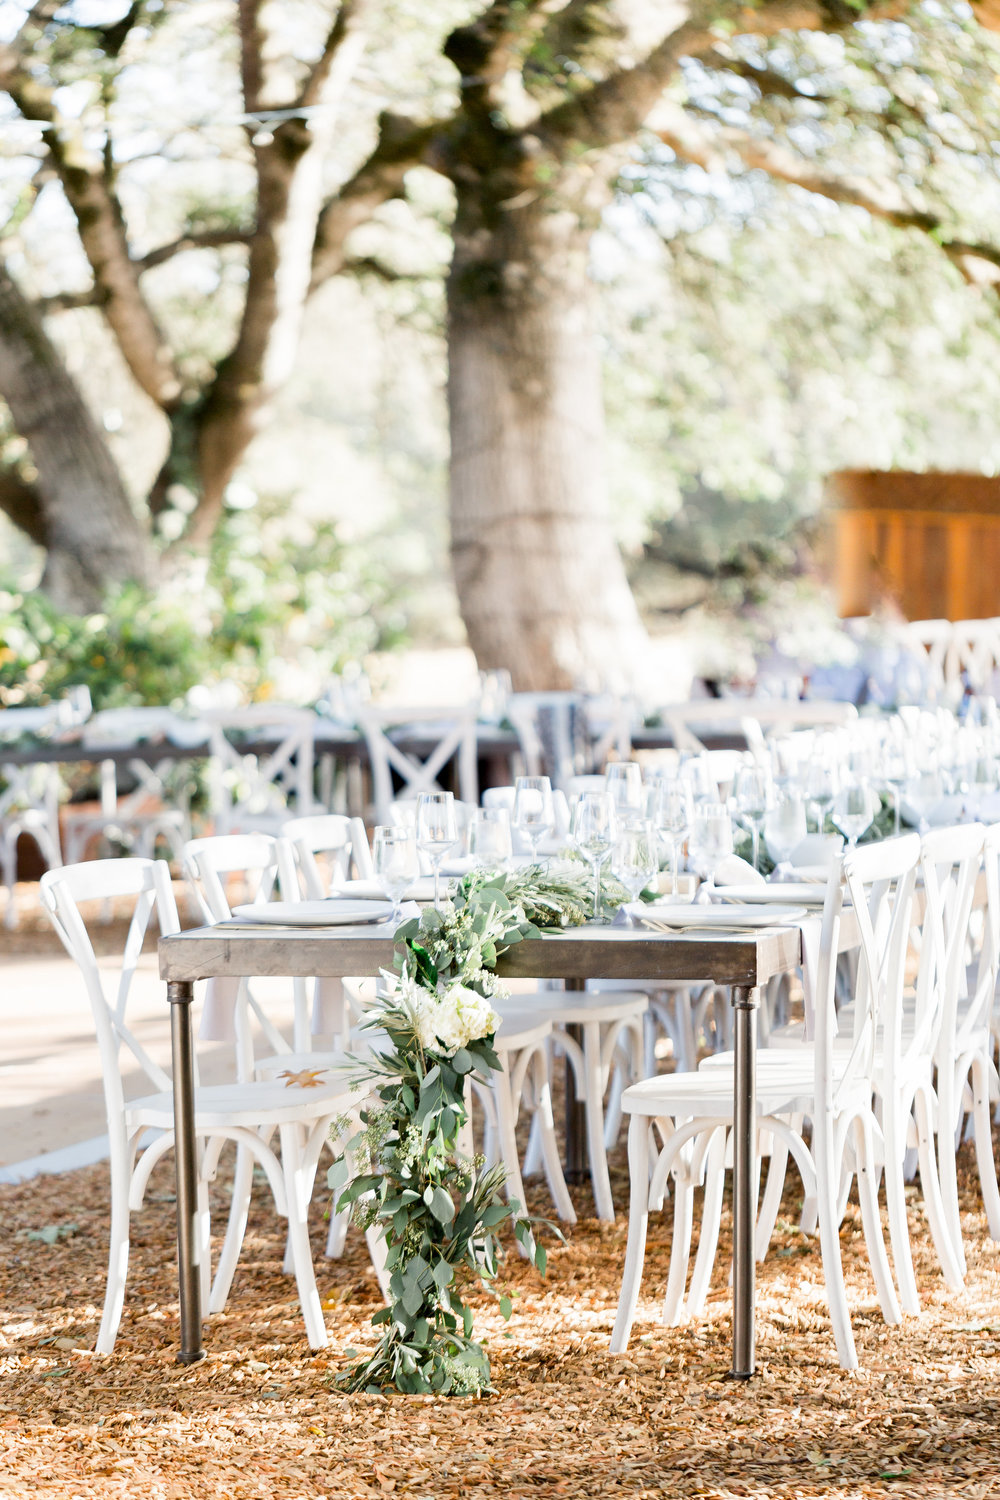 outdoor-reception-underneath-oak-trees-with-white-wood-trees.jpg